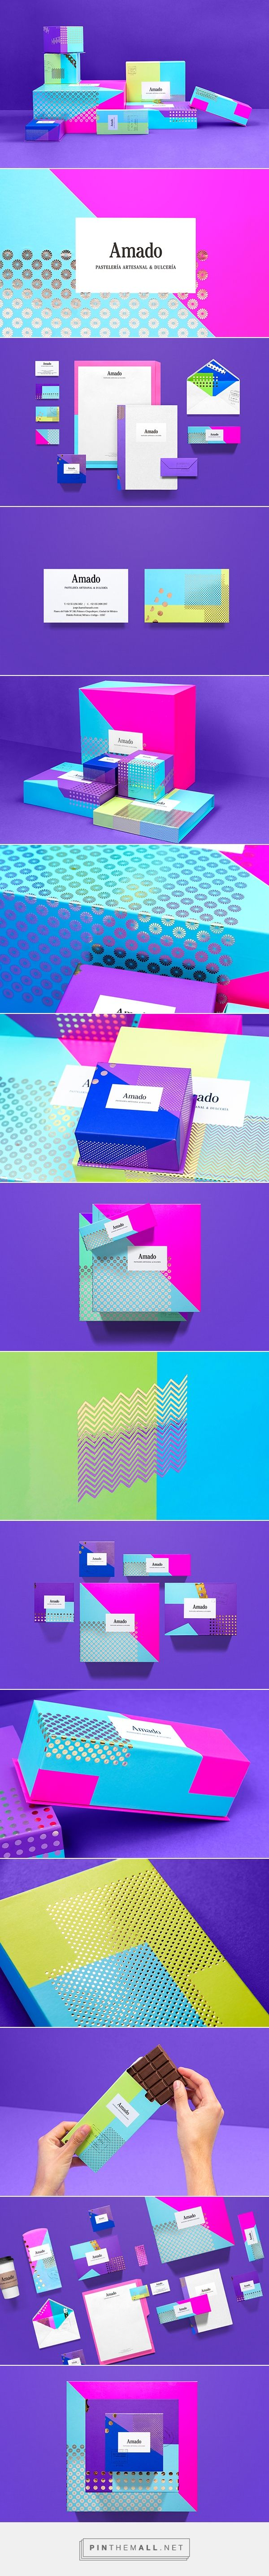 This is a modern, bright and geometric color scheme that is maintained throughout the various pieces in the collection (letters, envelopes, business cards, etc.) The use of metallic pattern adds a nice touch as well.